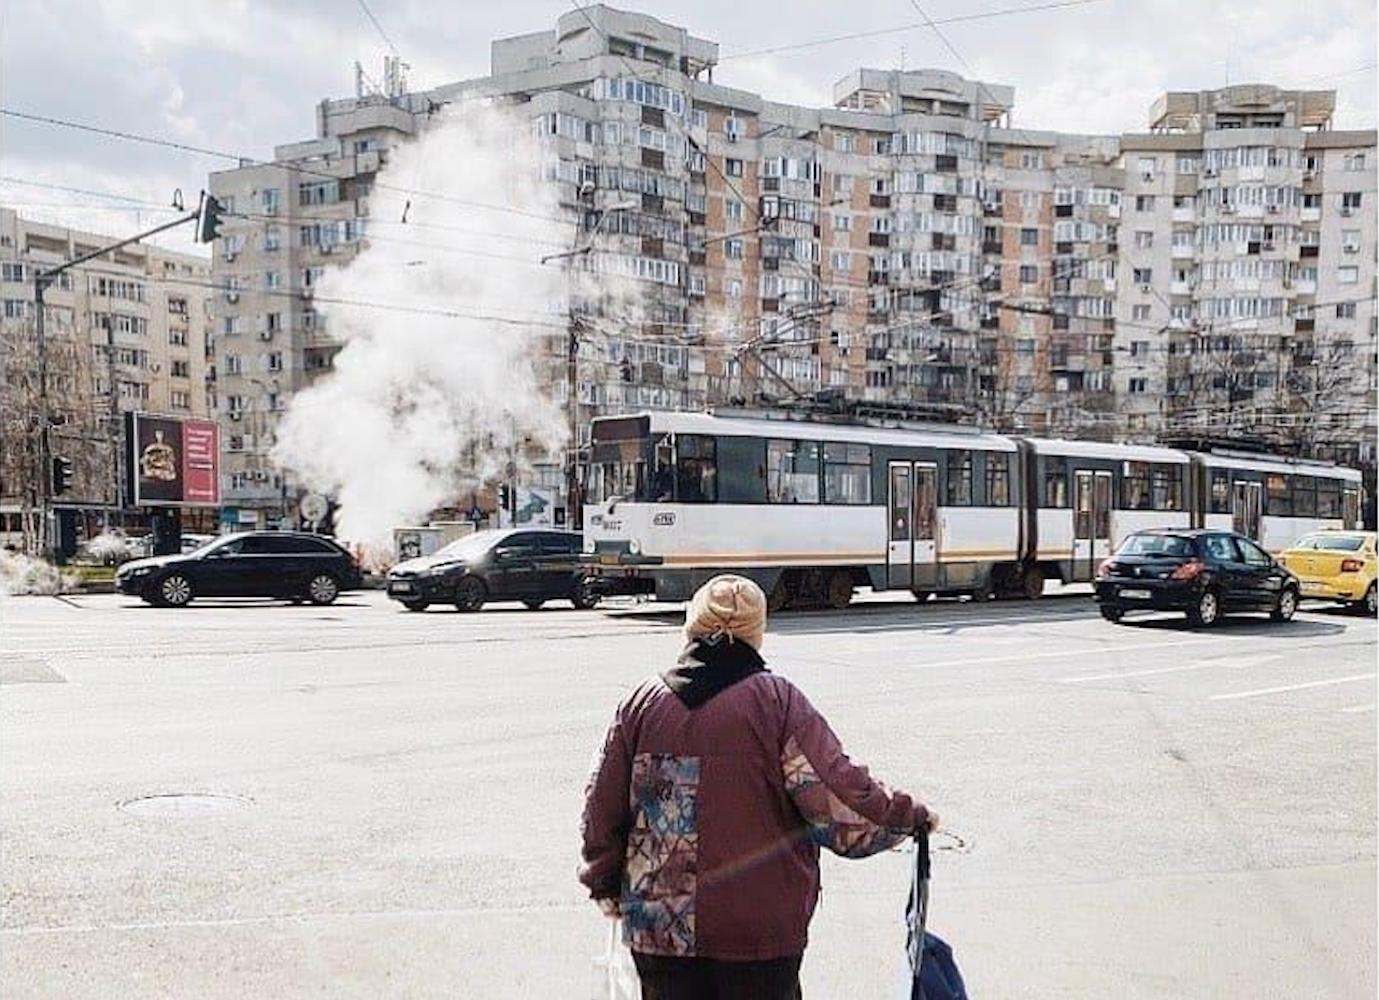 Bucharest on your doorstep: the Instagram account showing the parade of urban life in the Romanian capital